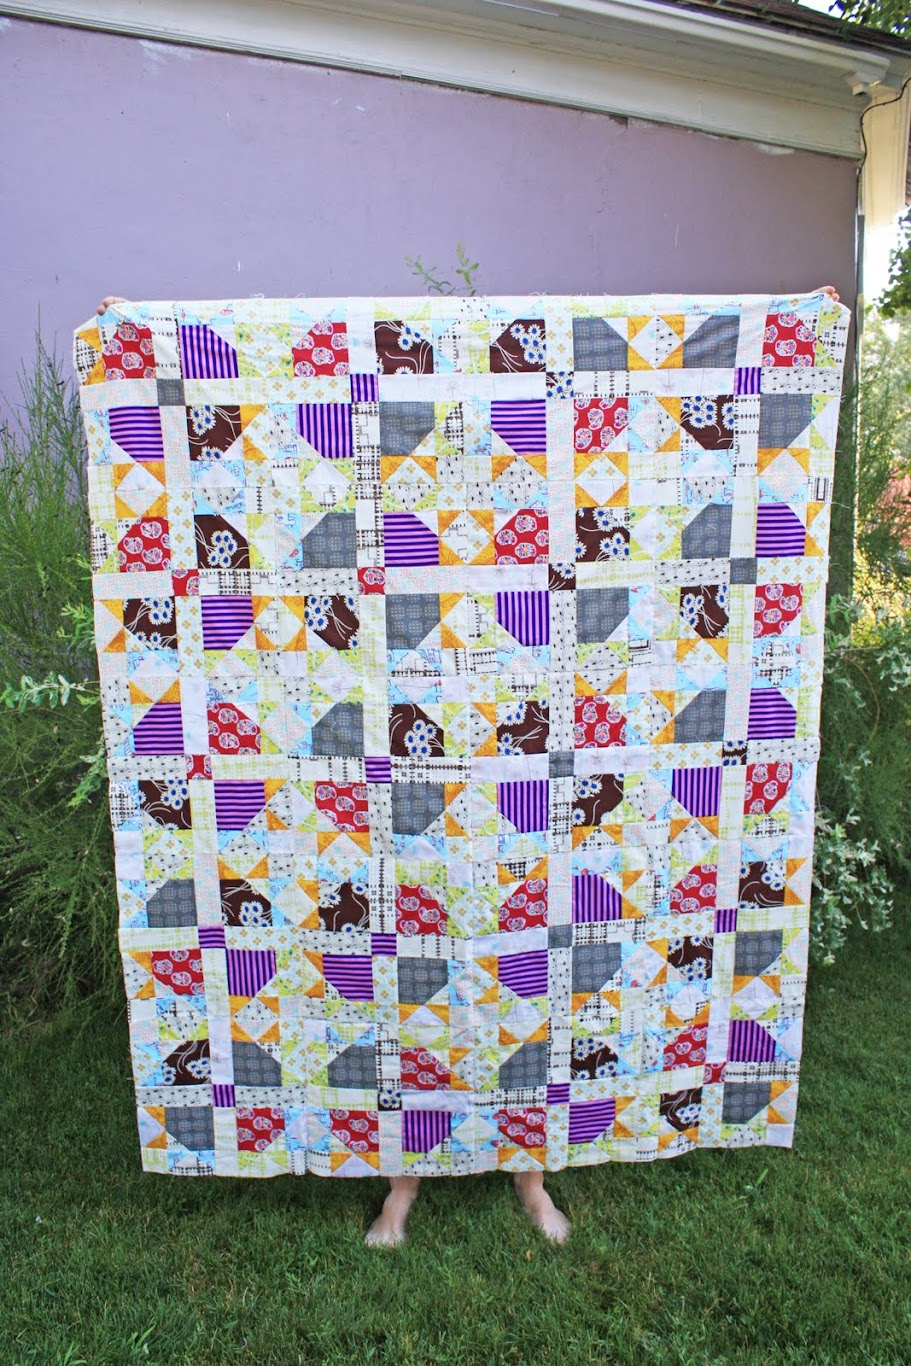 Quilts, quilts, and more quilts!